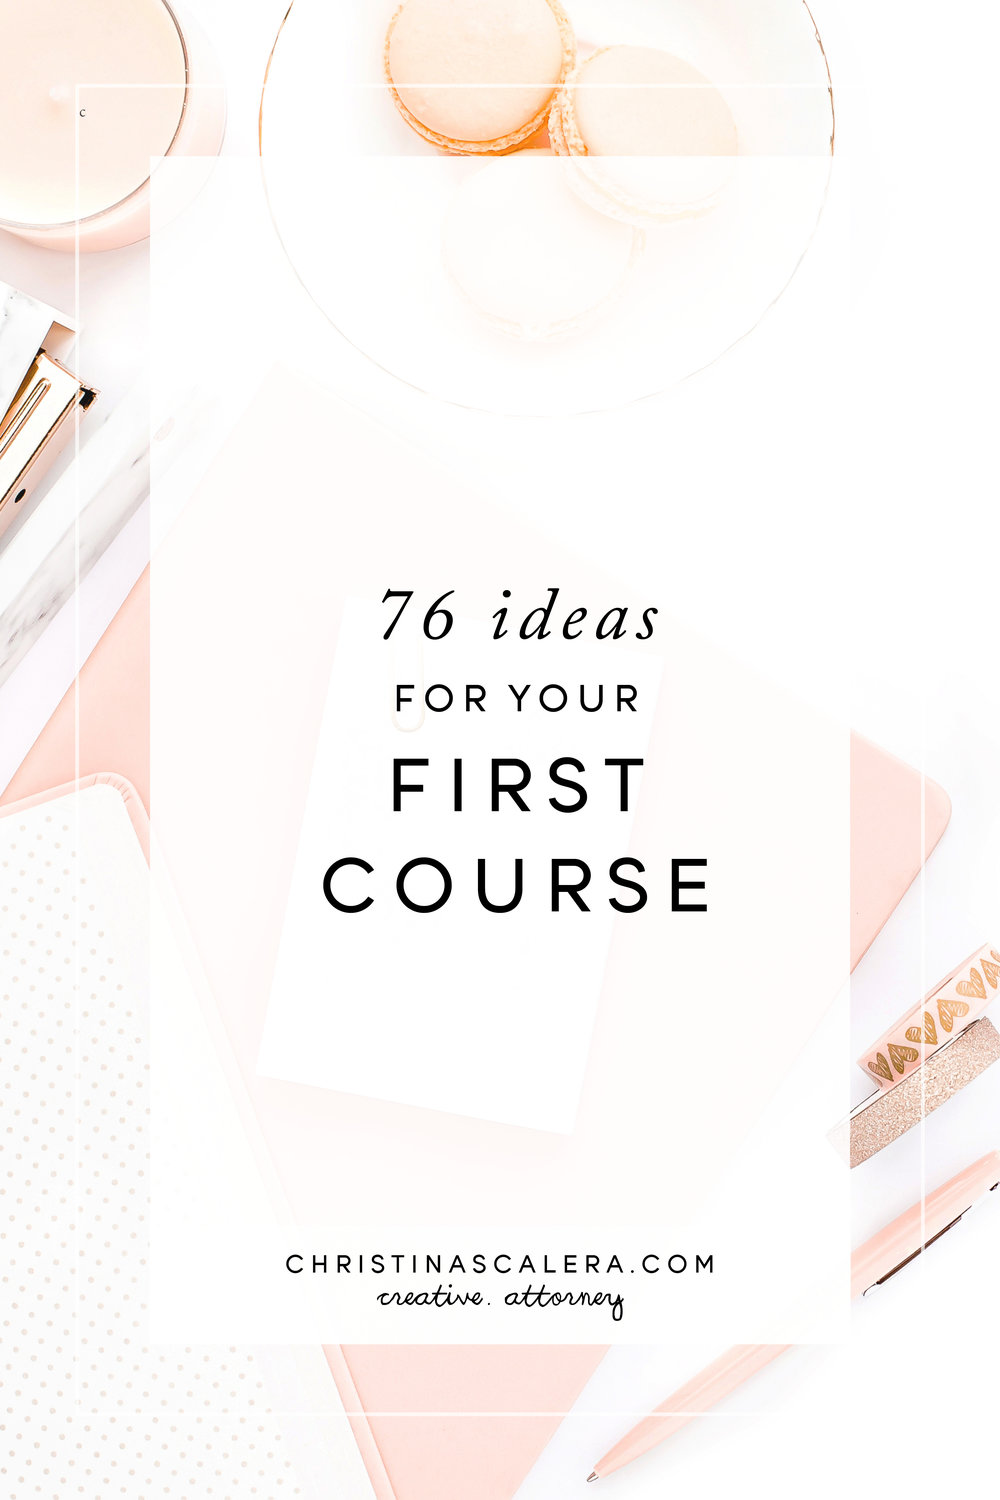 76 Ideas for your first business course! Legal tips for creative business owners!